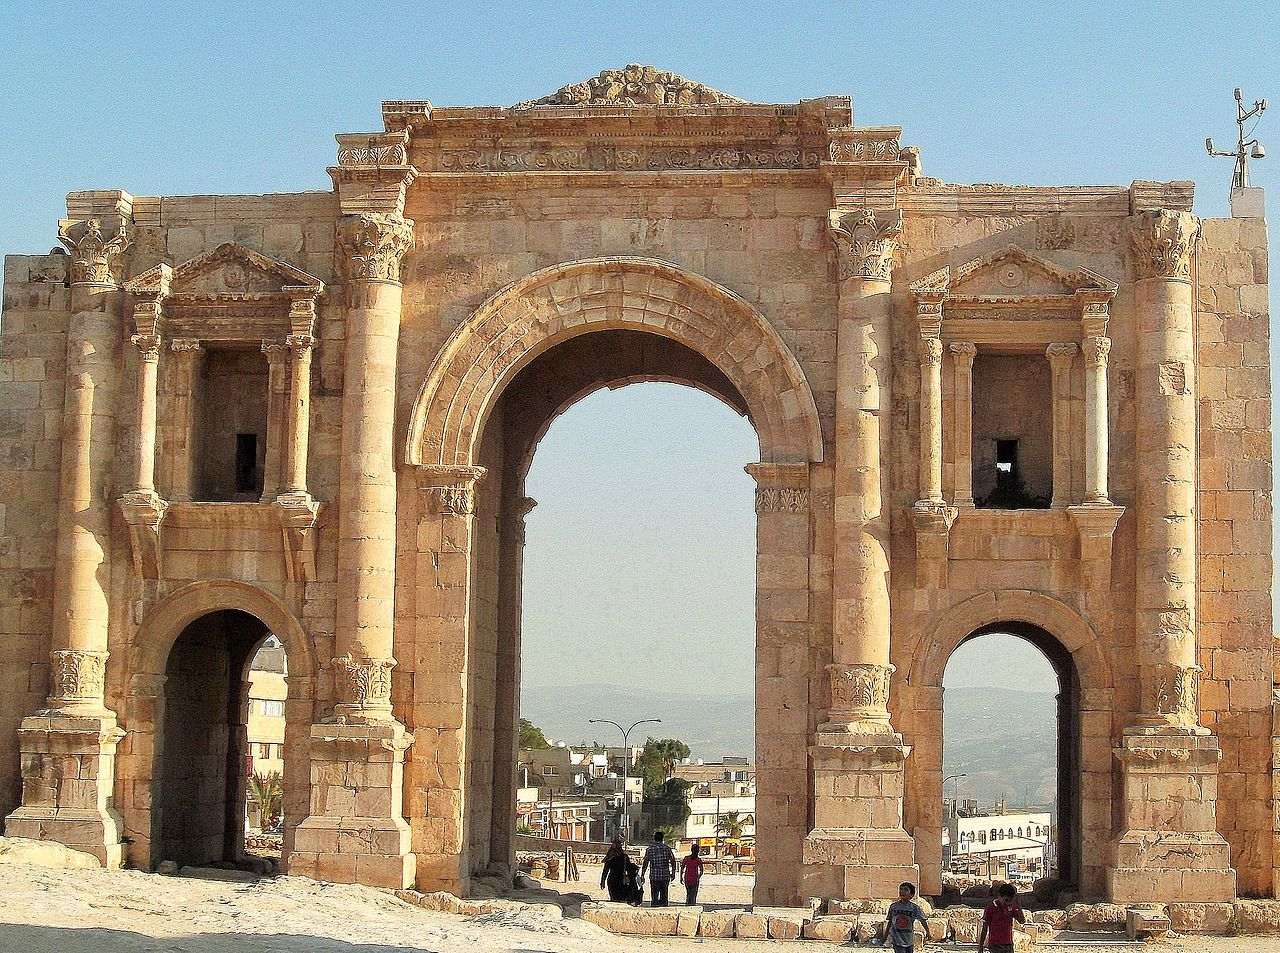 Arch of Hadrian - Jerash – General View